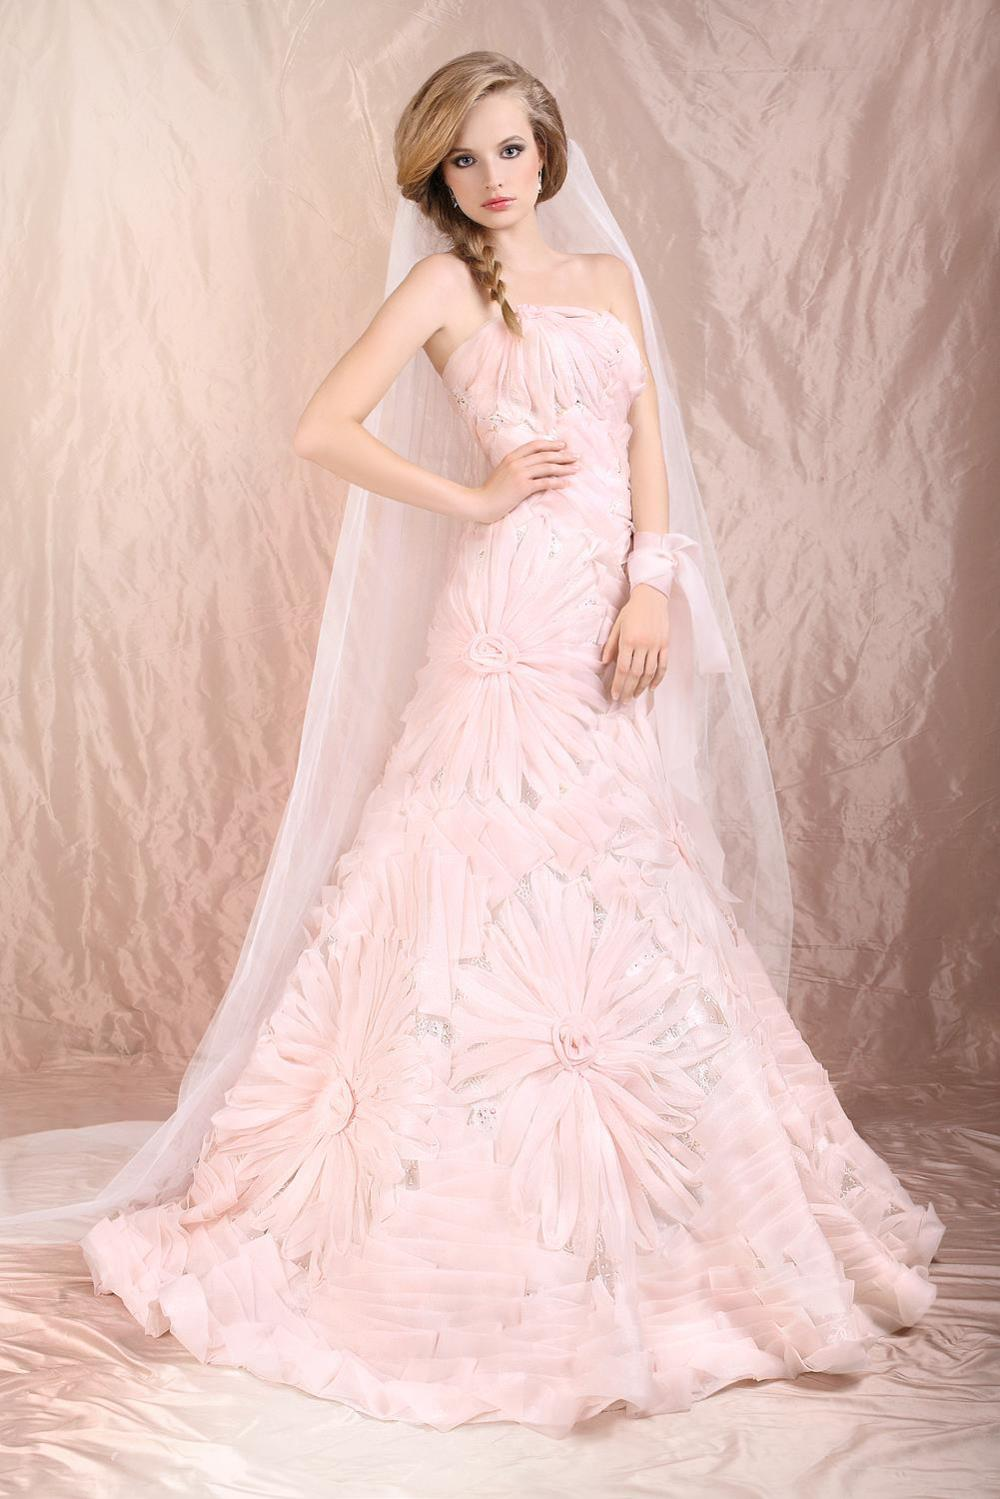 blush wedding dress pink wedding dress Wedding Dress Blush